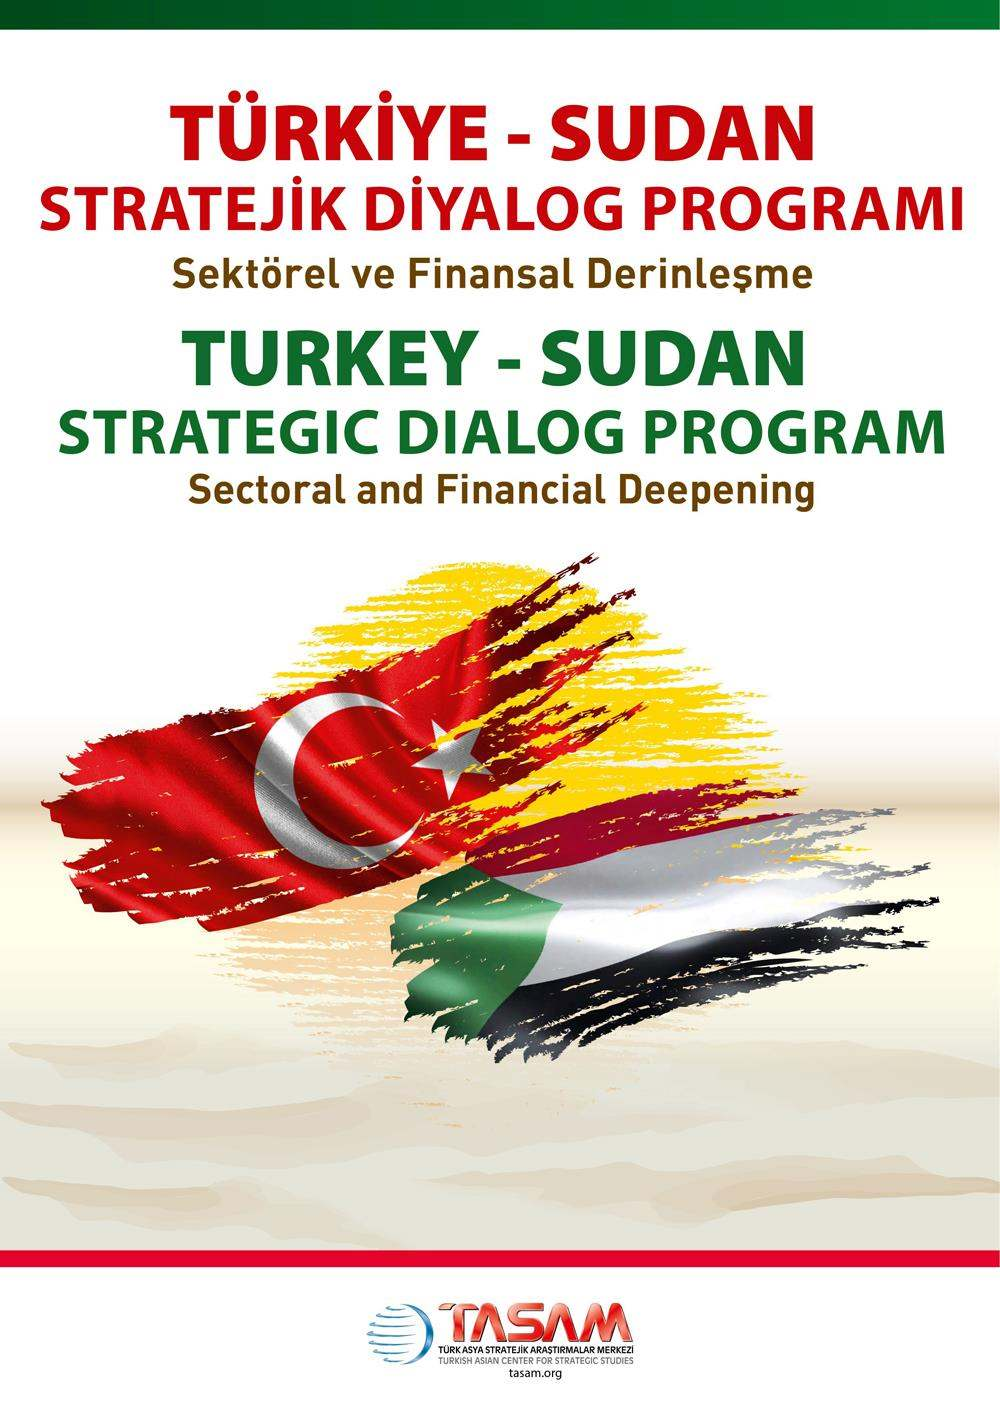 Turkey - Sudan Strategic Dialogue Program